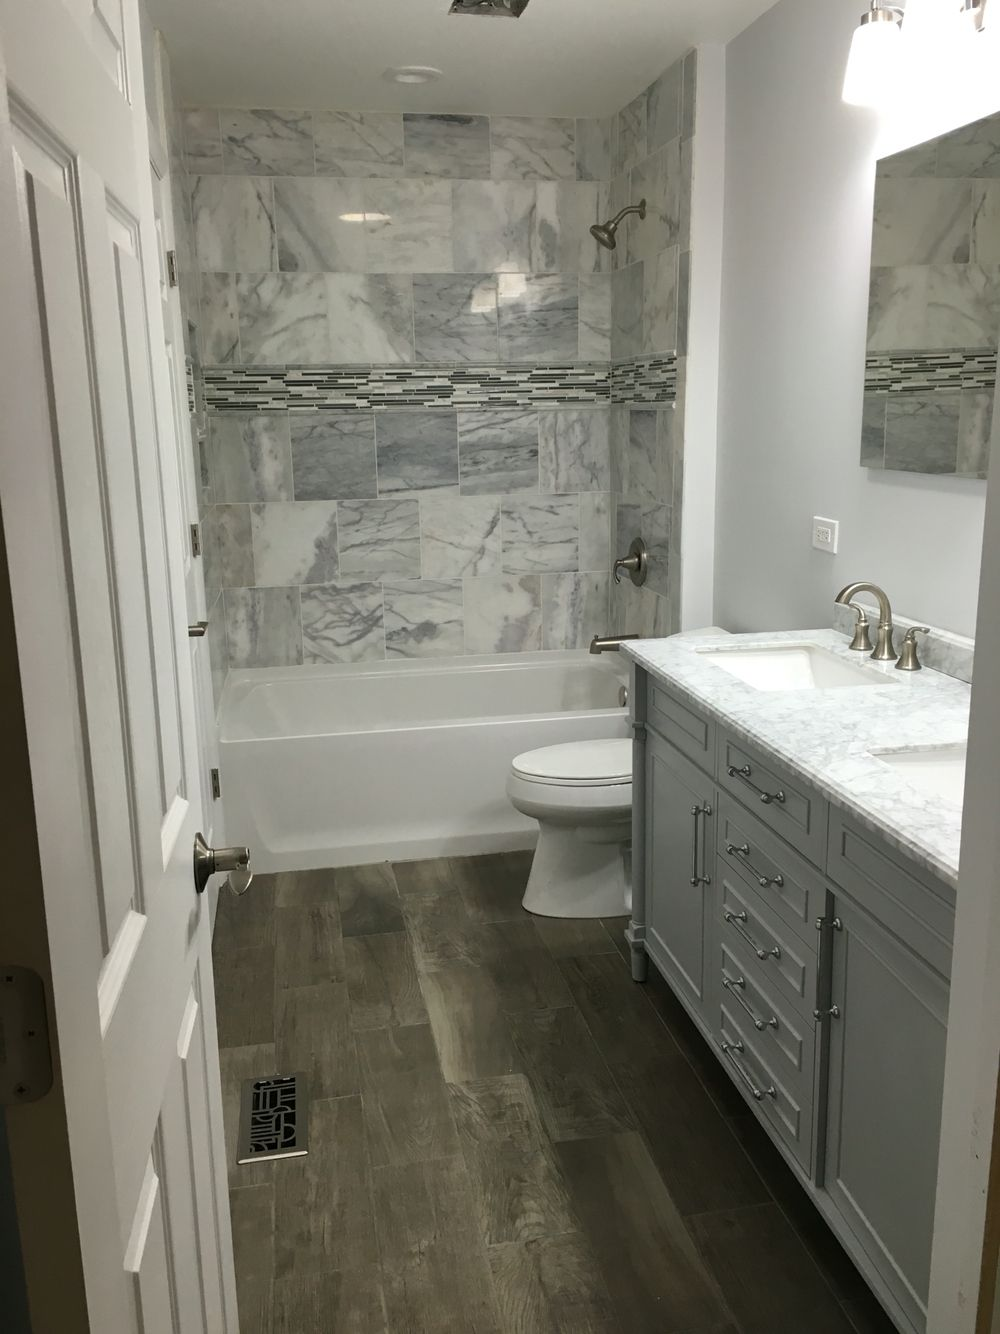 small full bathroom remodel ideas bathroom remodel small full bathroom full bathroom remodel bathrooms remodel 7752